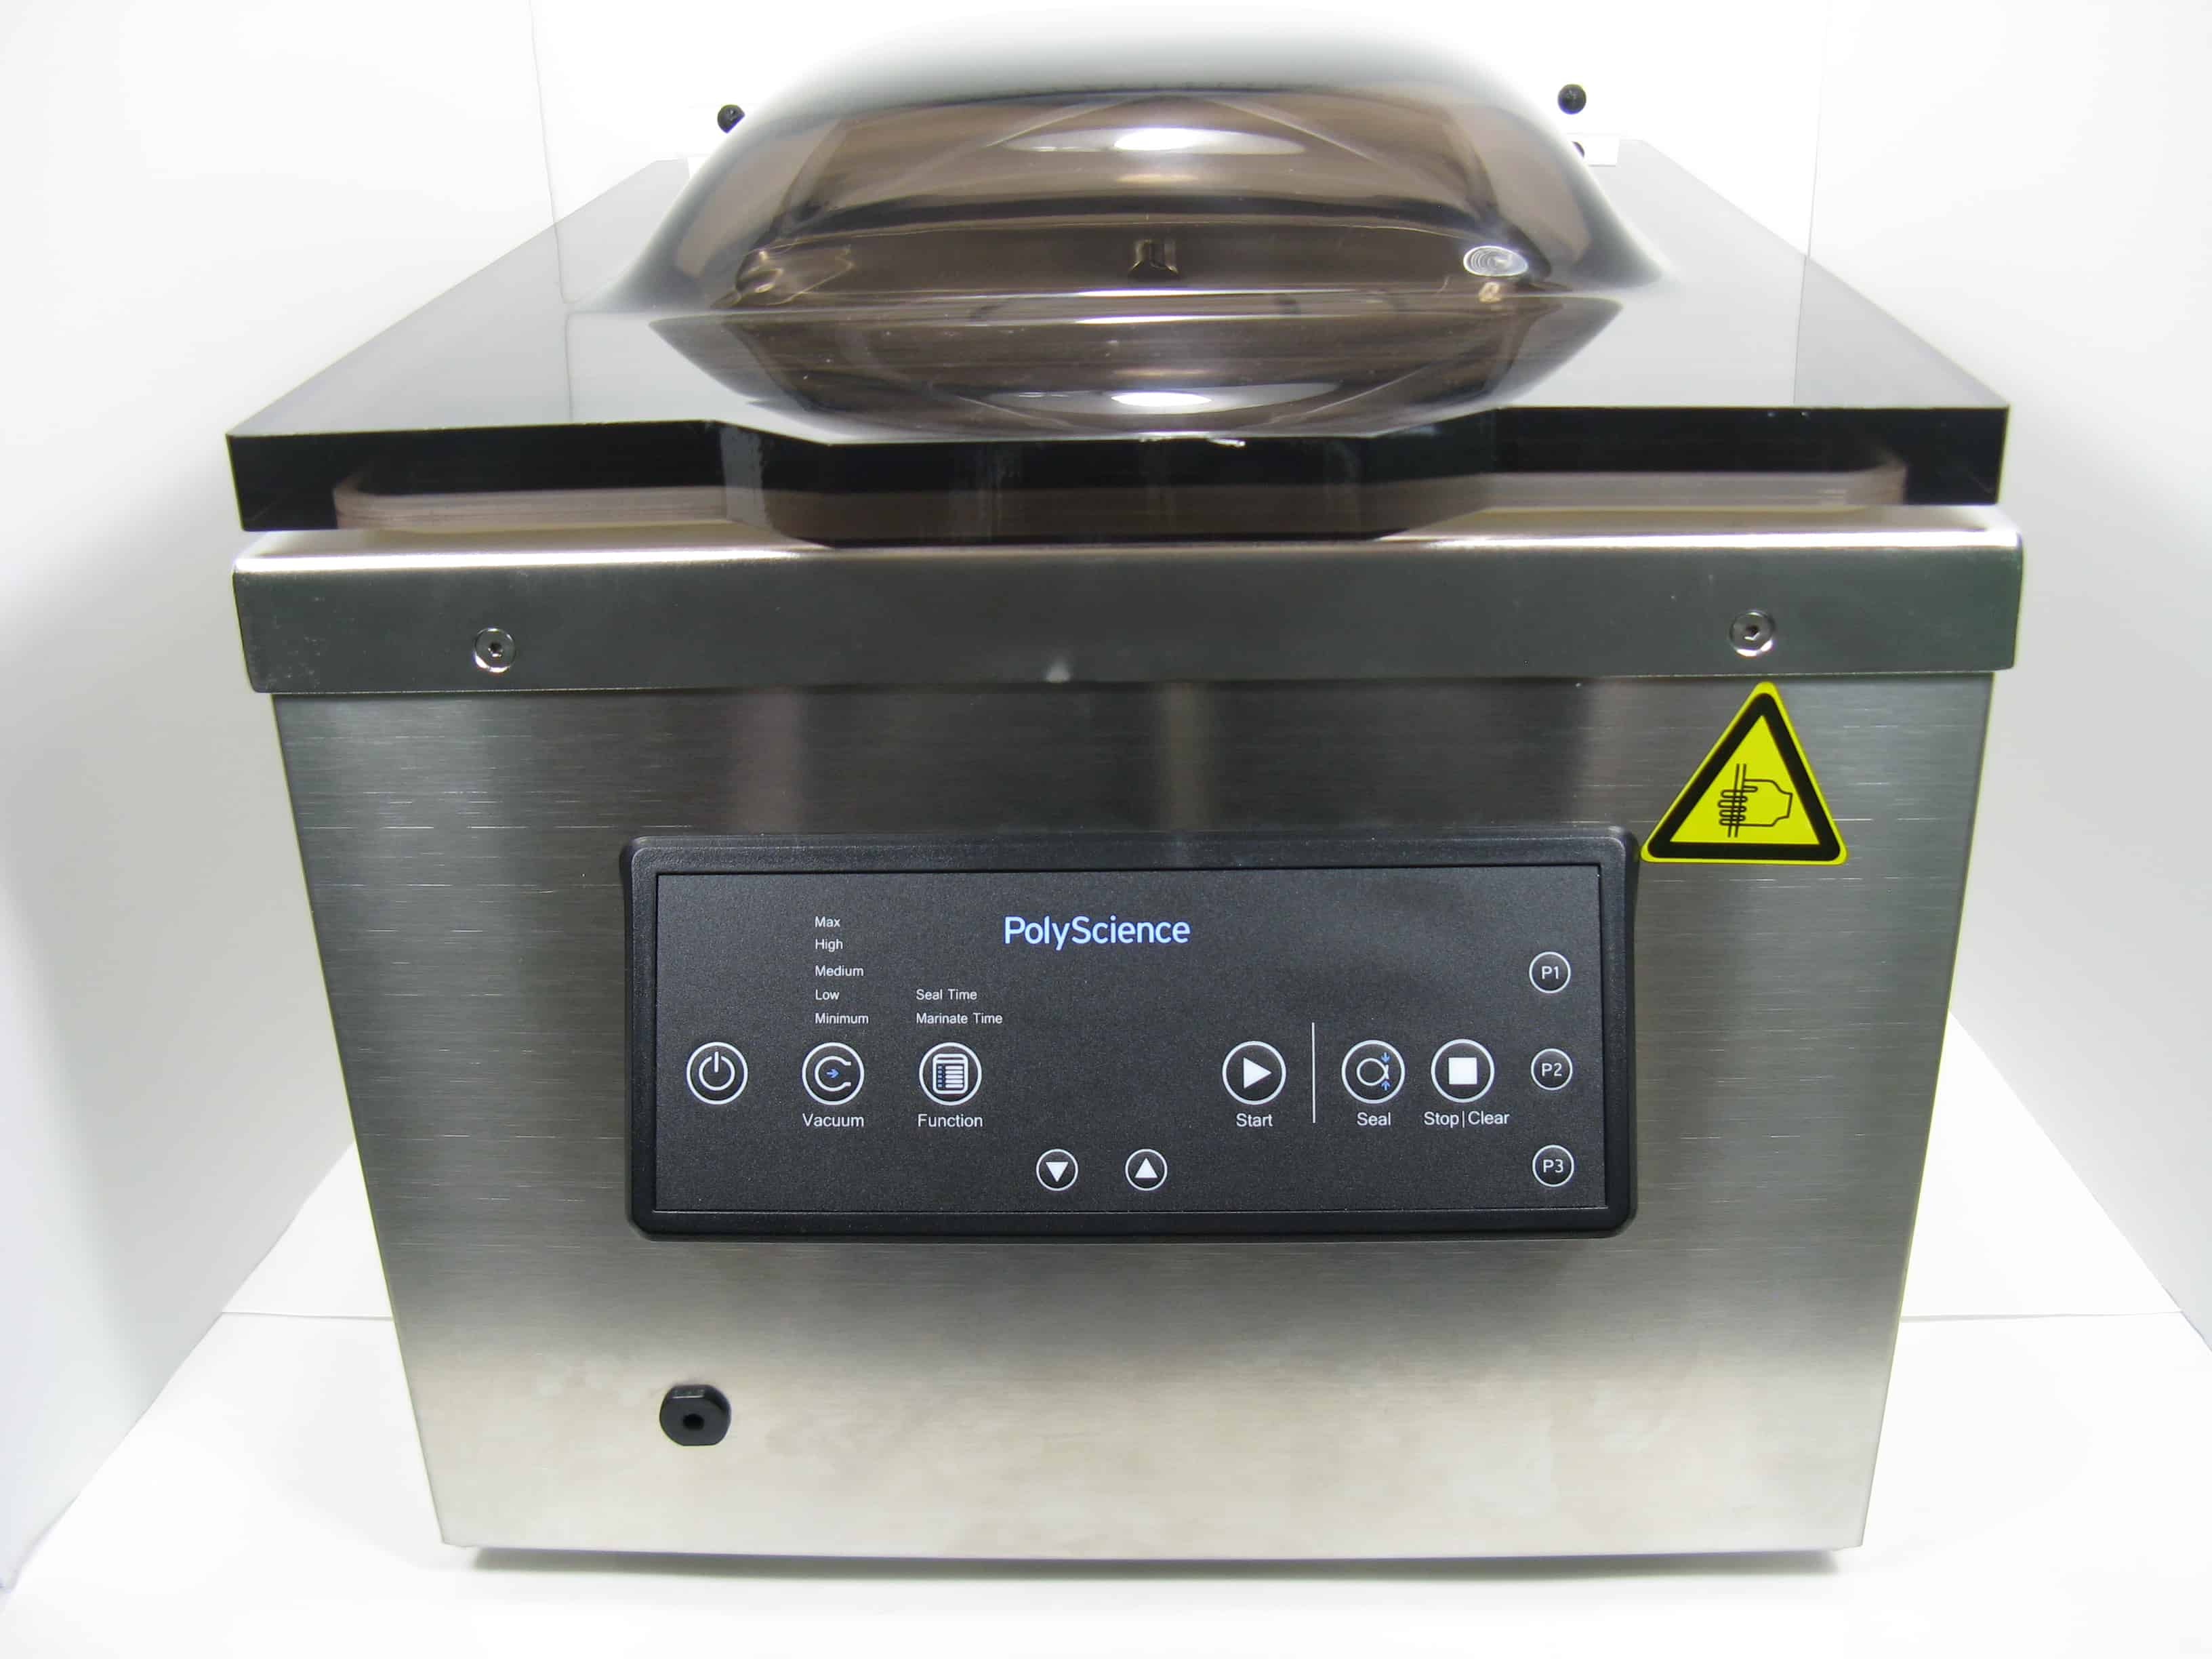 PolyScience 300 Series Chamber Vacuum Sealer Detailed Review